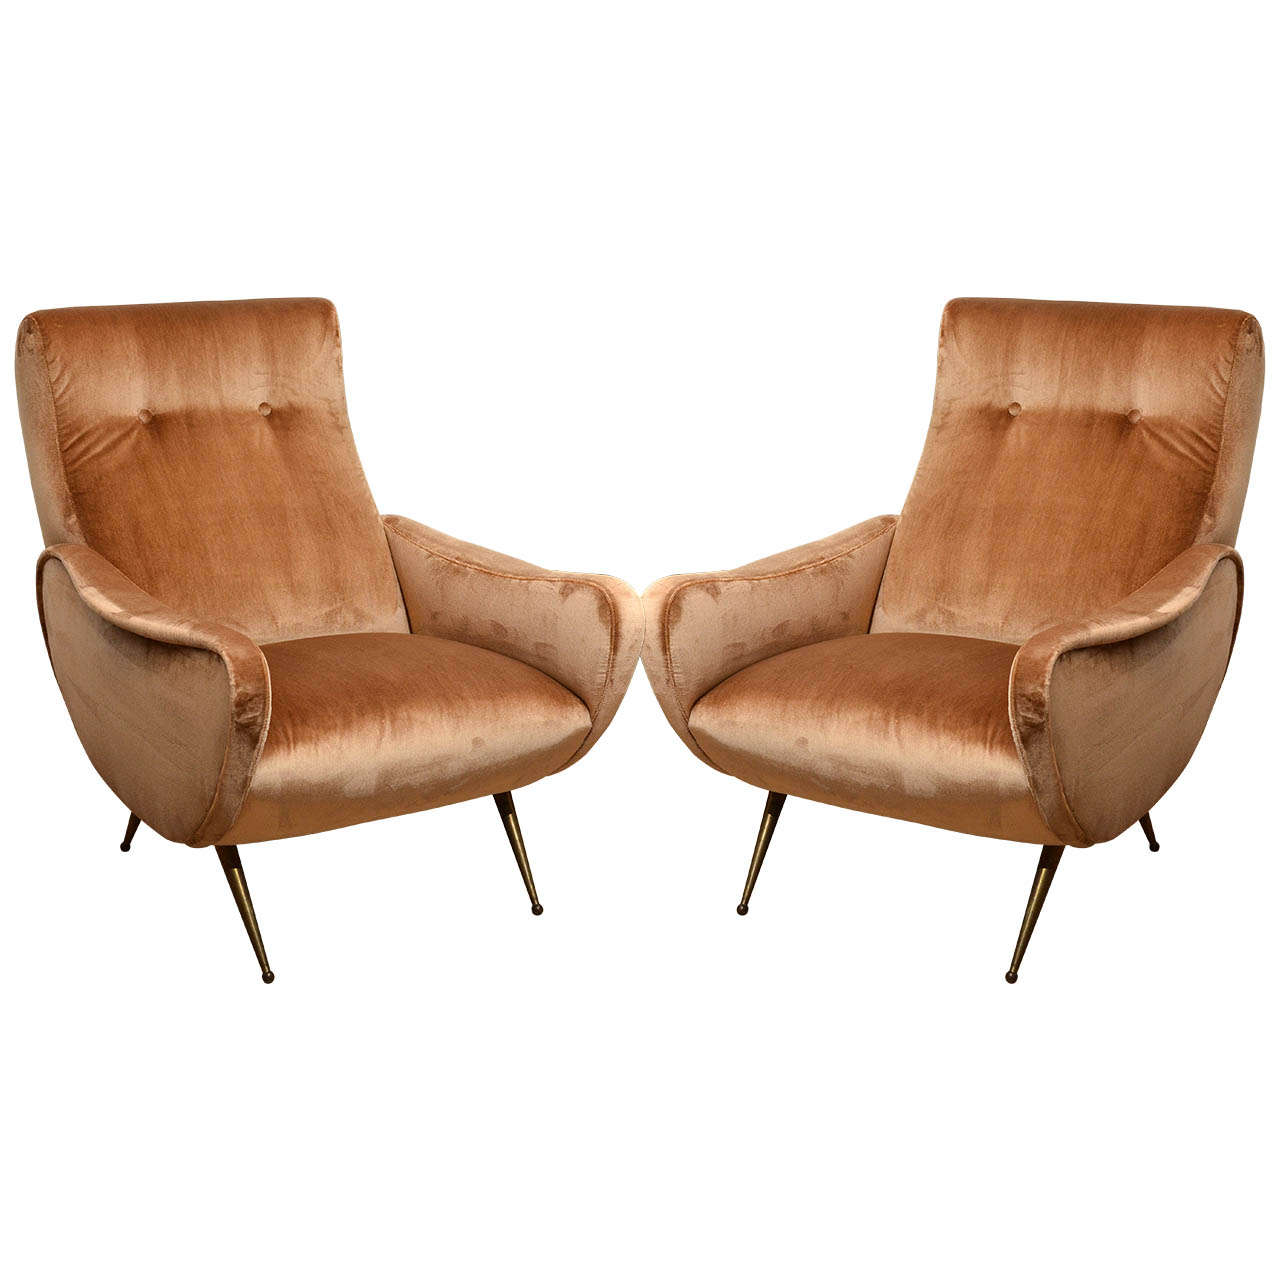 Pair of Italian Midcentury Armchairs in the Style of Marco Zanuso